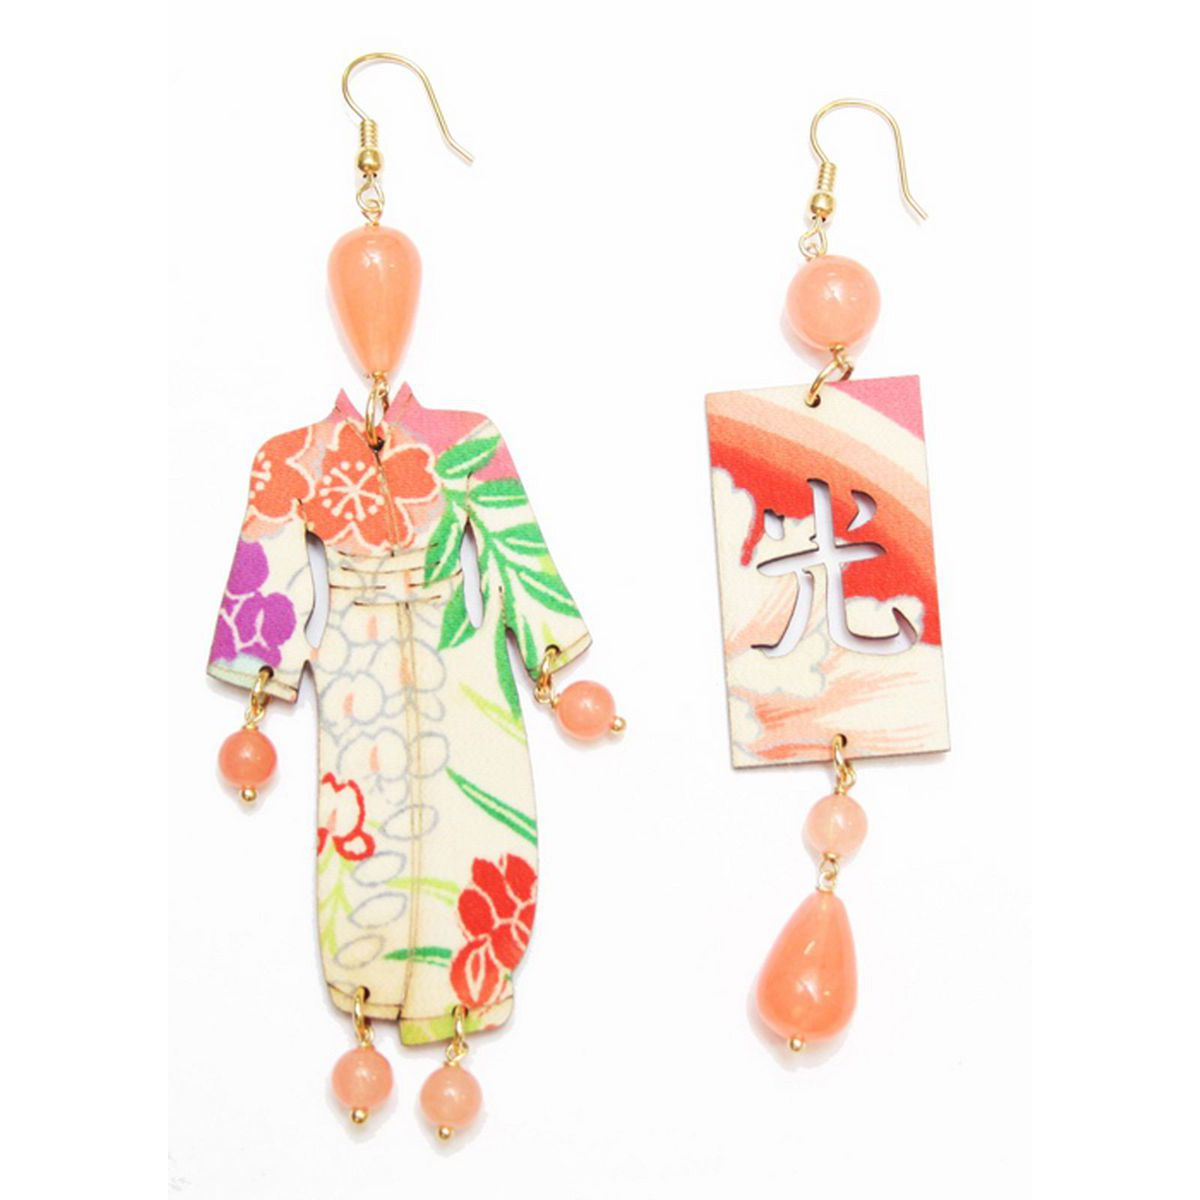 BIG KIMONO ORANGE EARRINGS Orange LEBOLE GIOIELLI